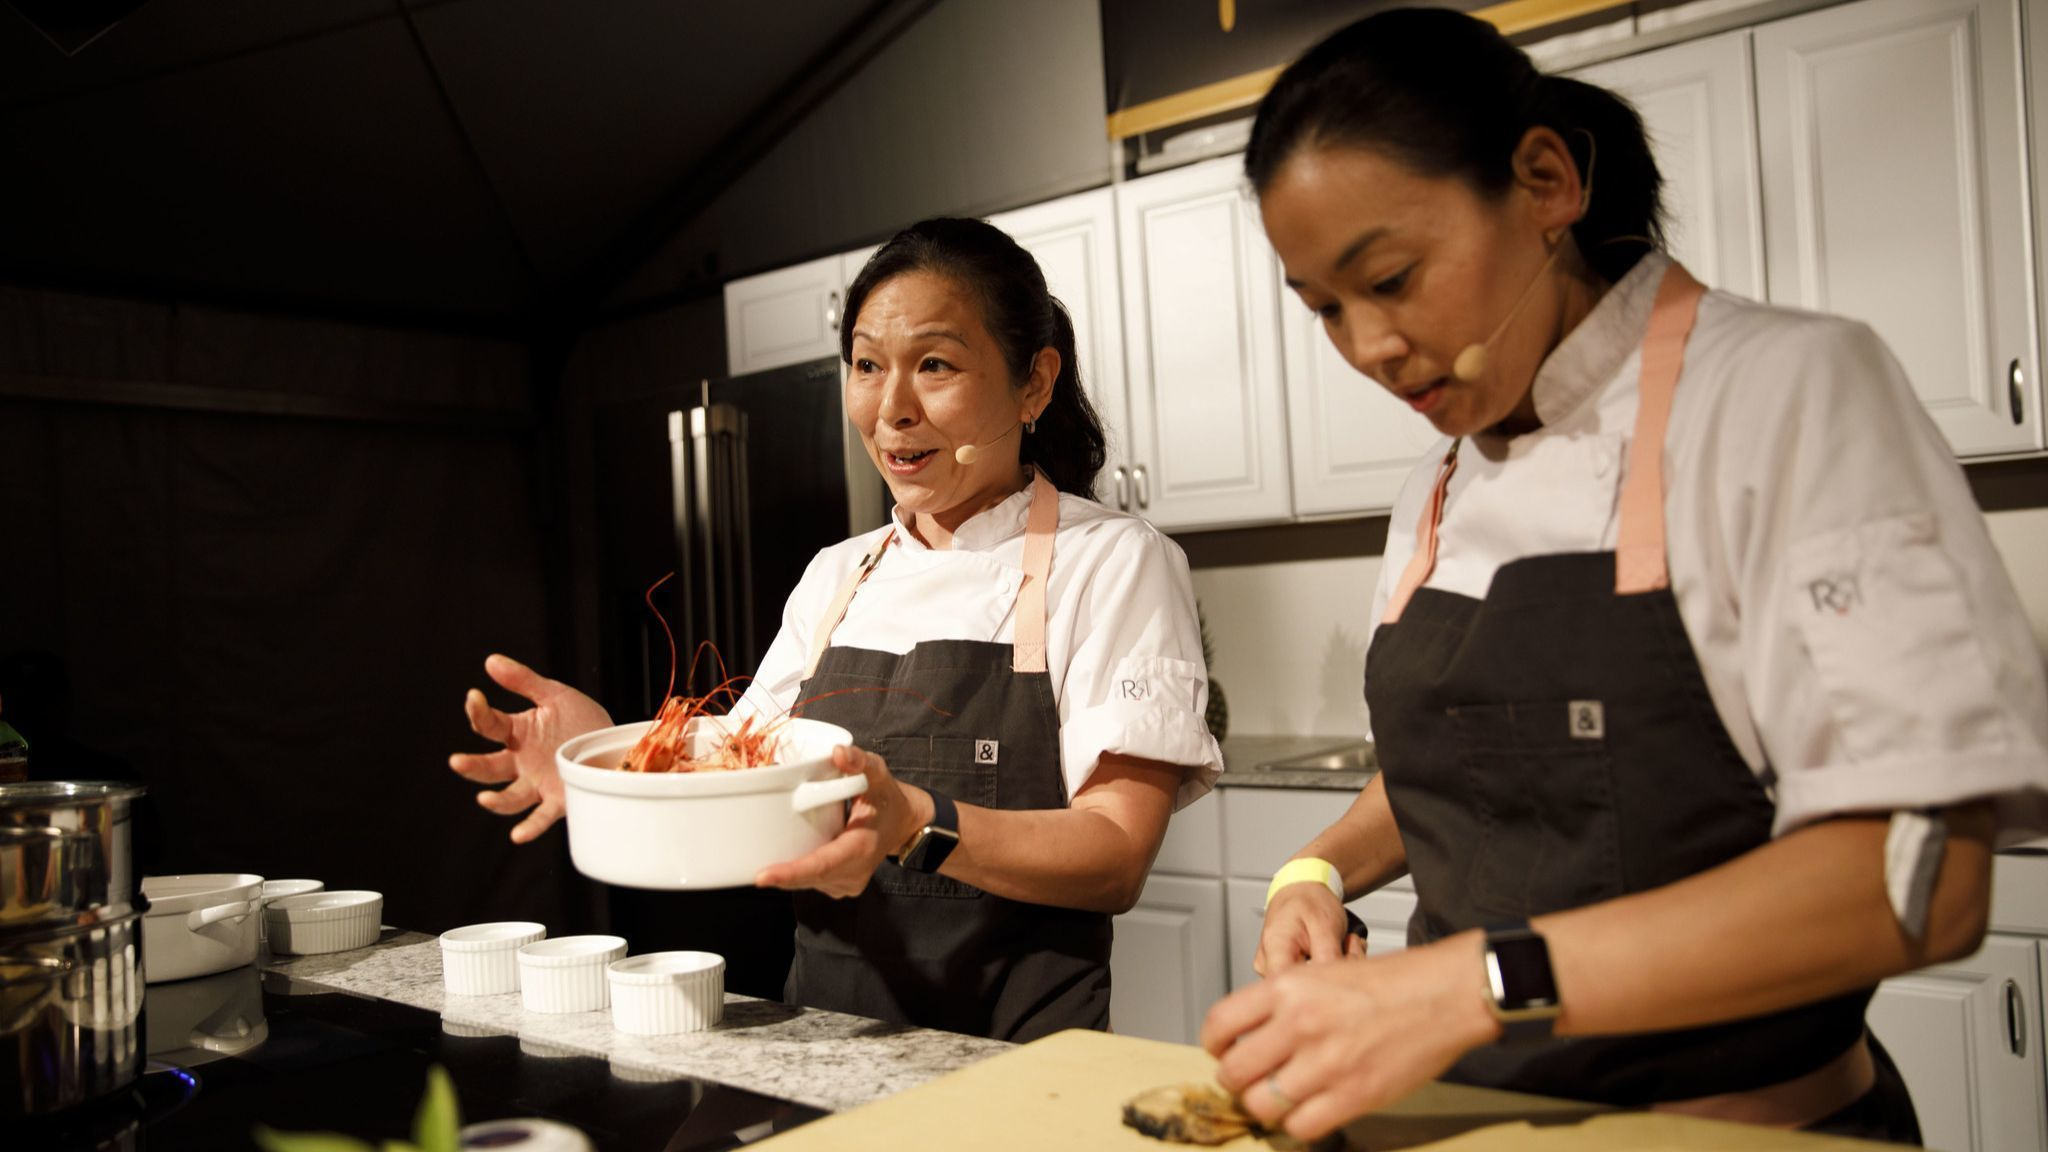 Niki Nakayama and Carole Lida-Nakayama of n/naka present on the culinary stage during The Taste on t